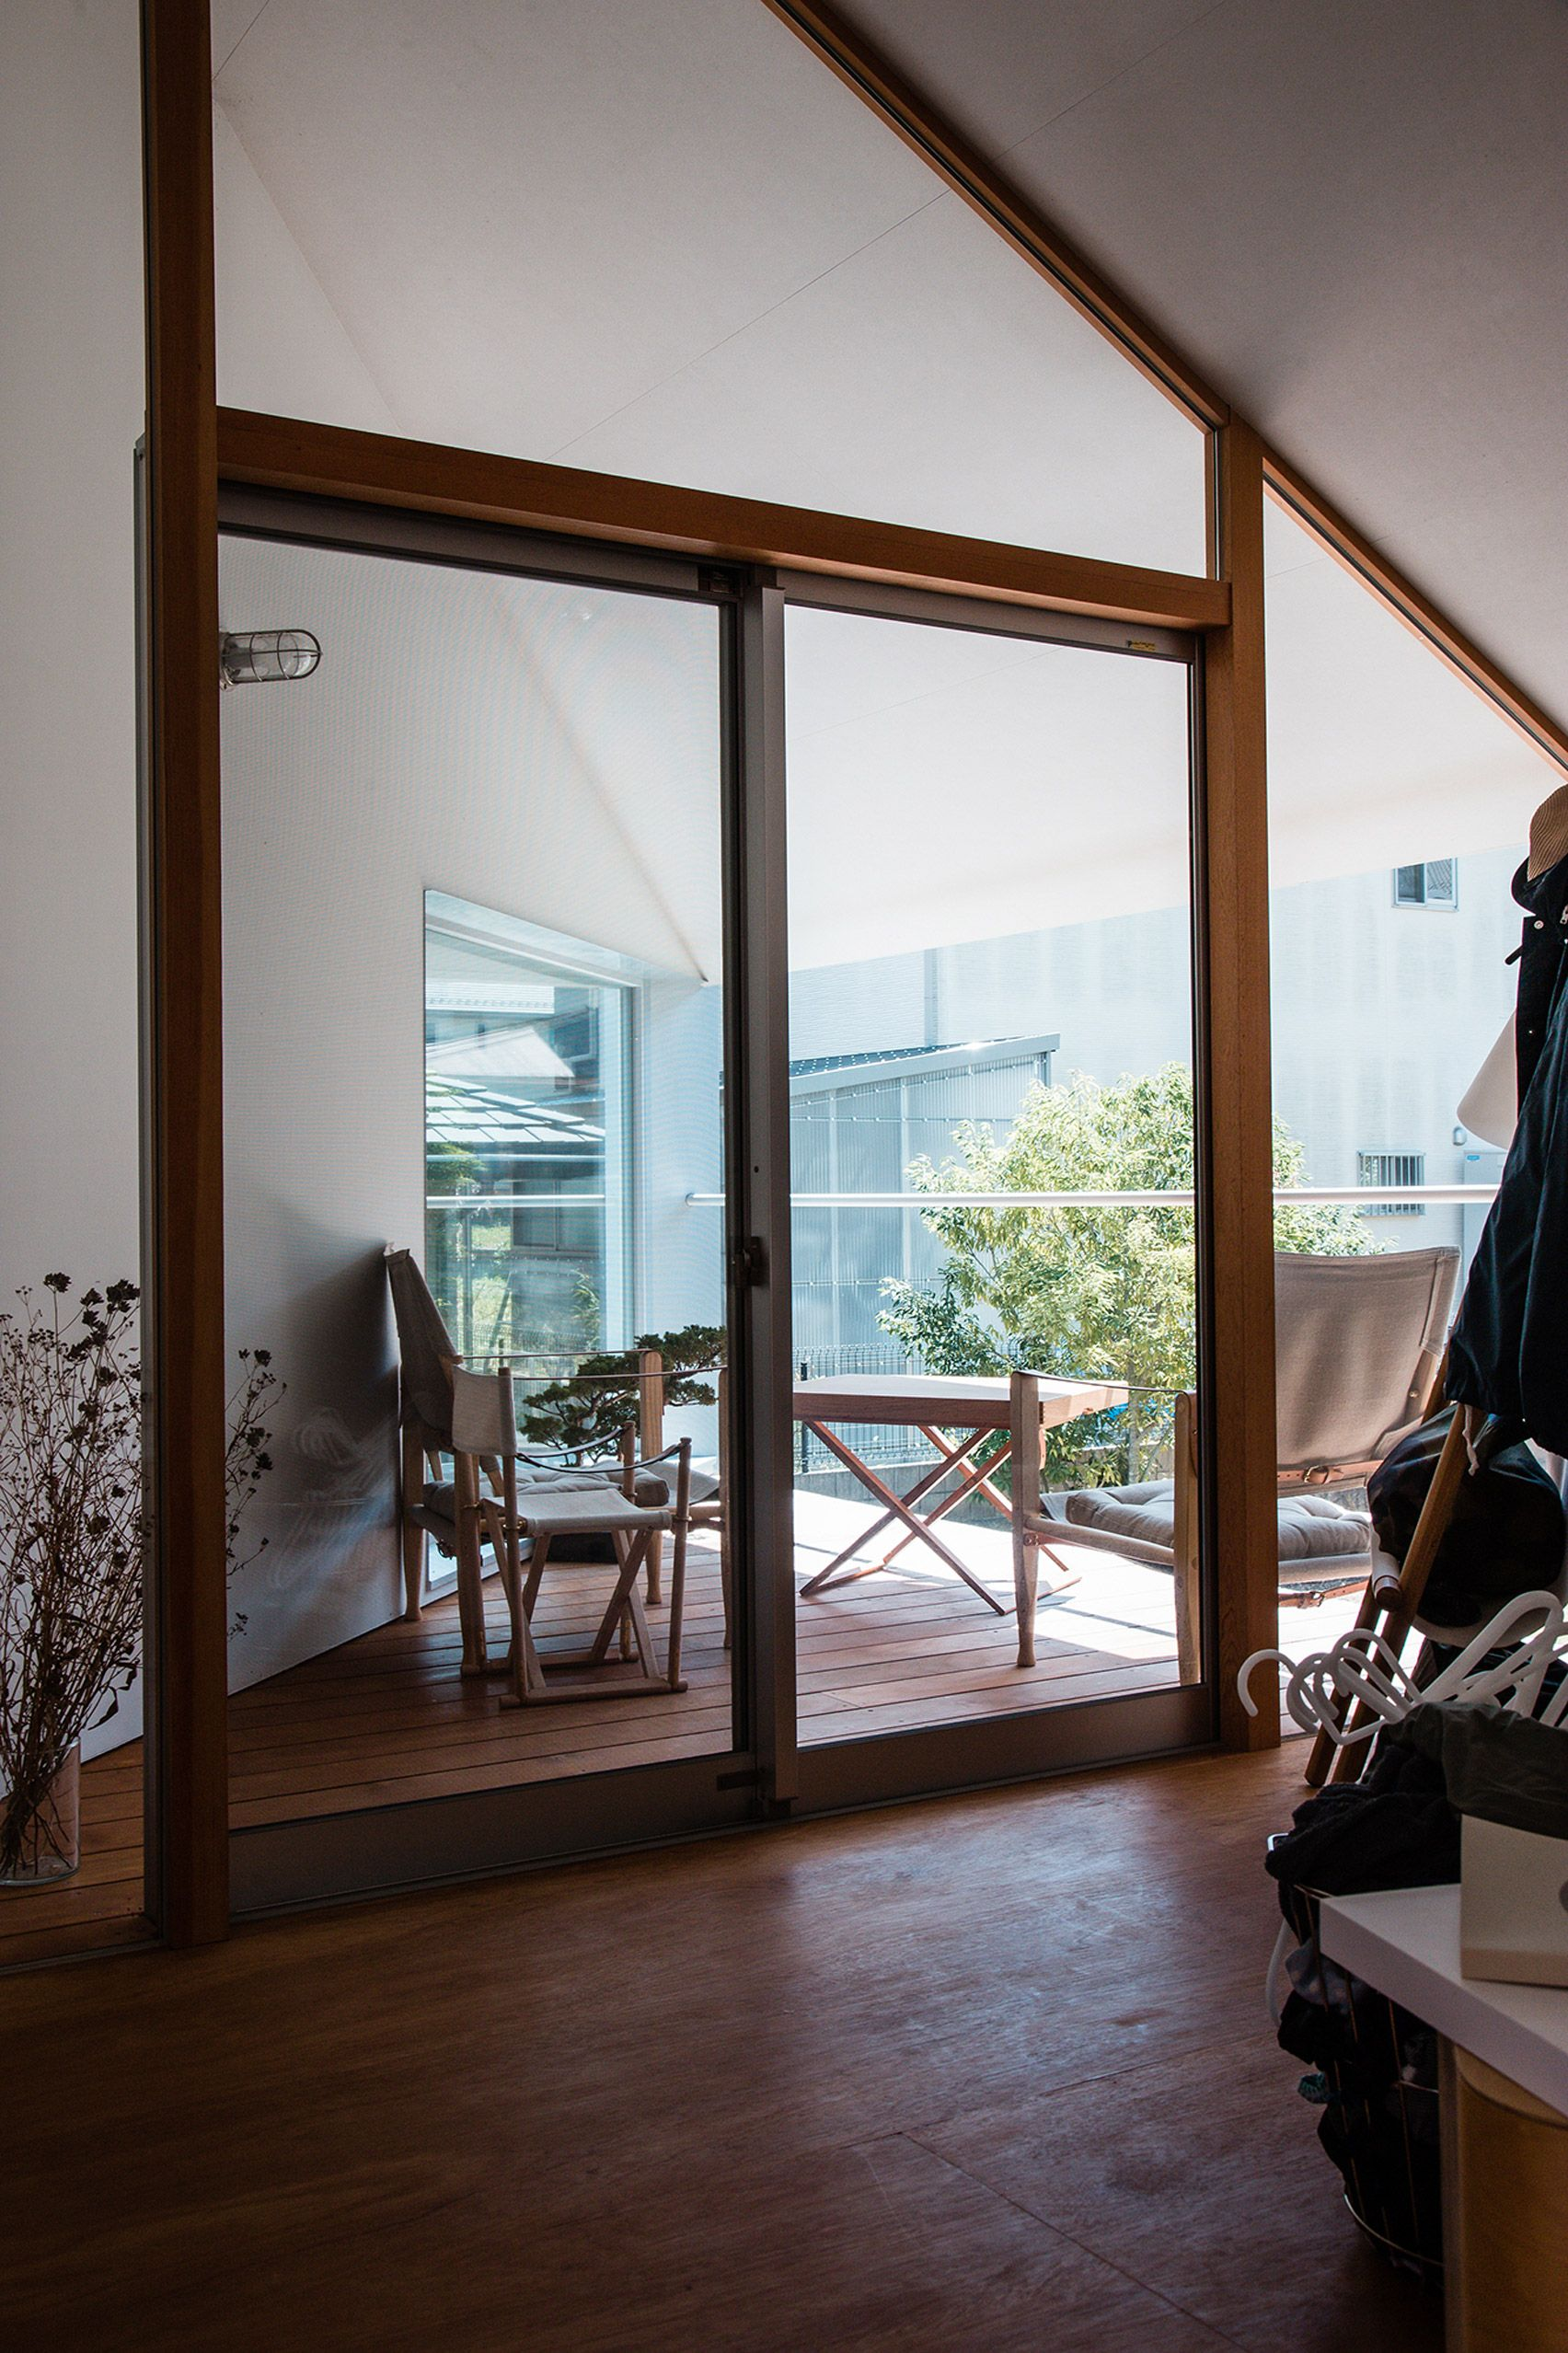 Huge Sliding Door Reveals Courtyard At House In Soe By Tato Architects